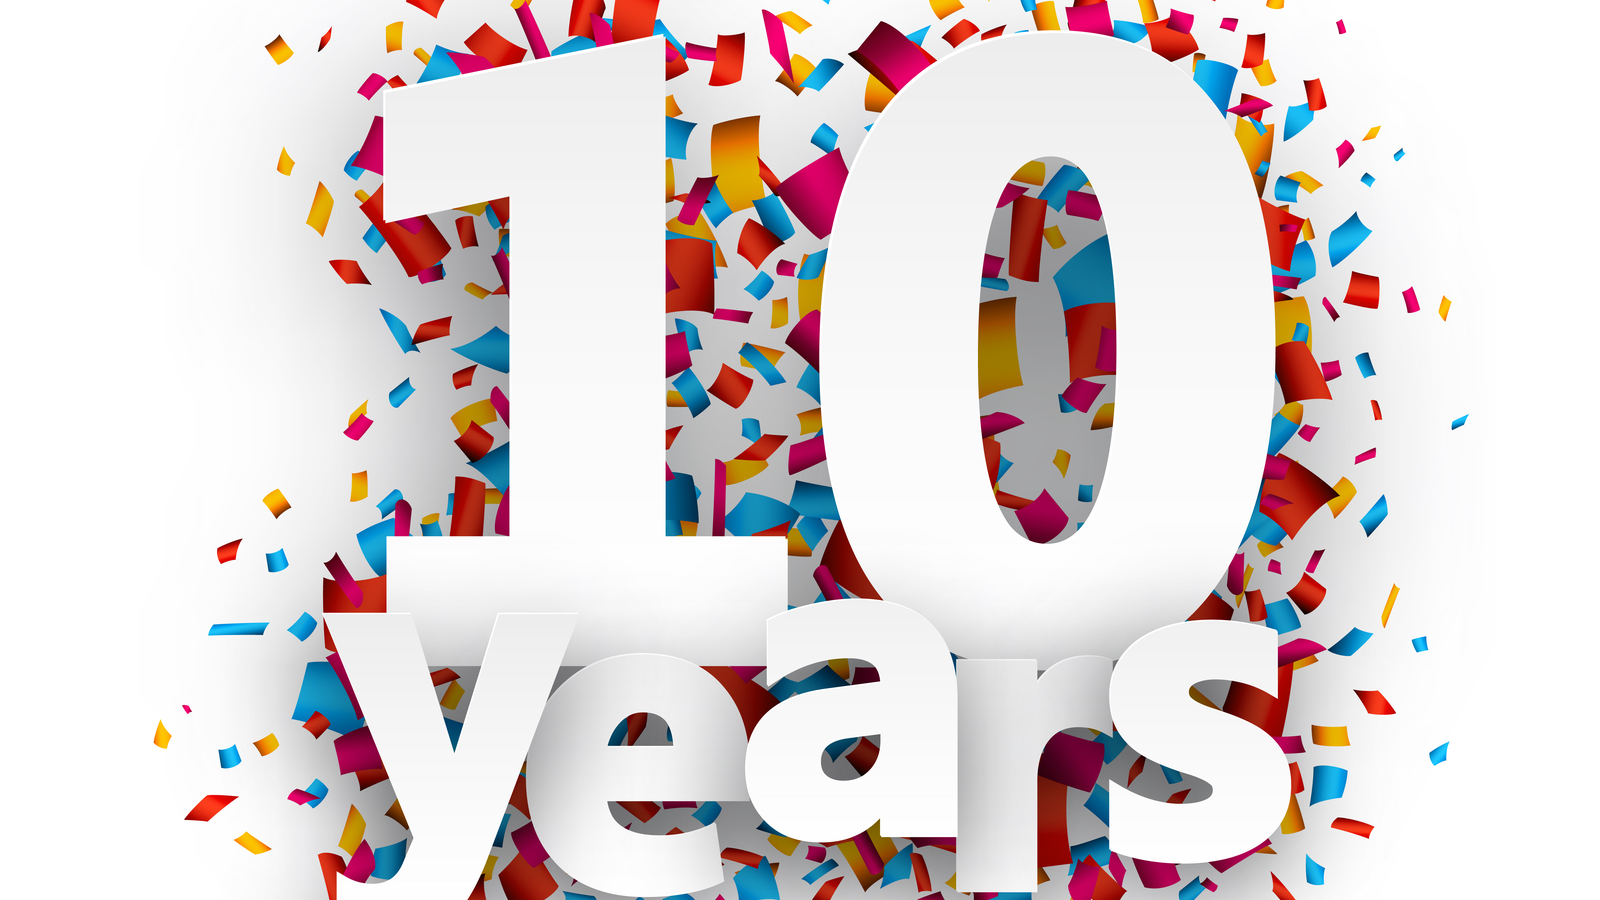 10 years  u2013 keeping pace with technology